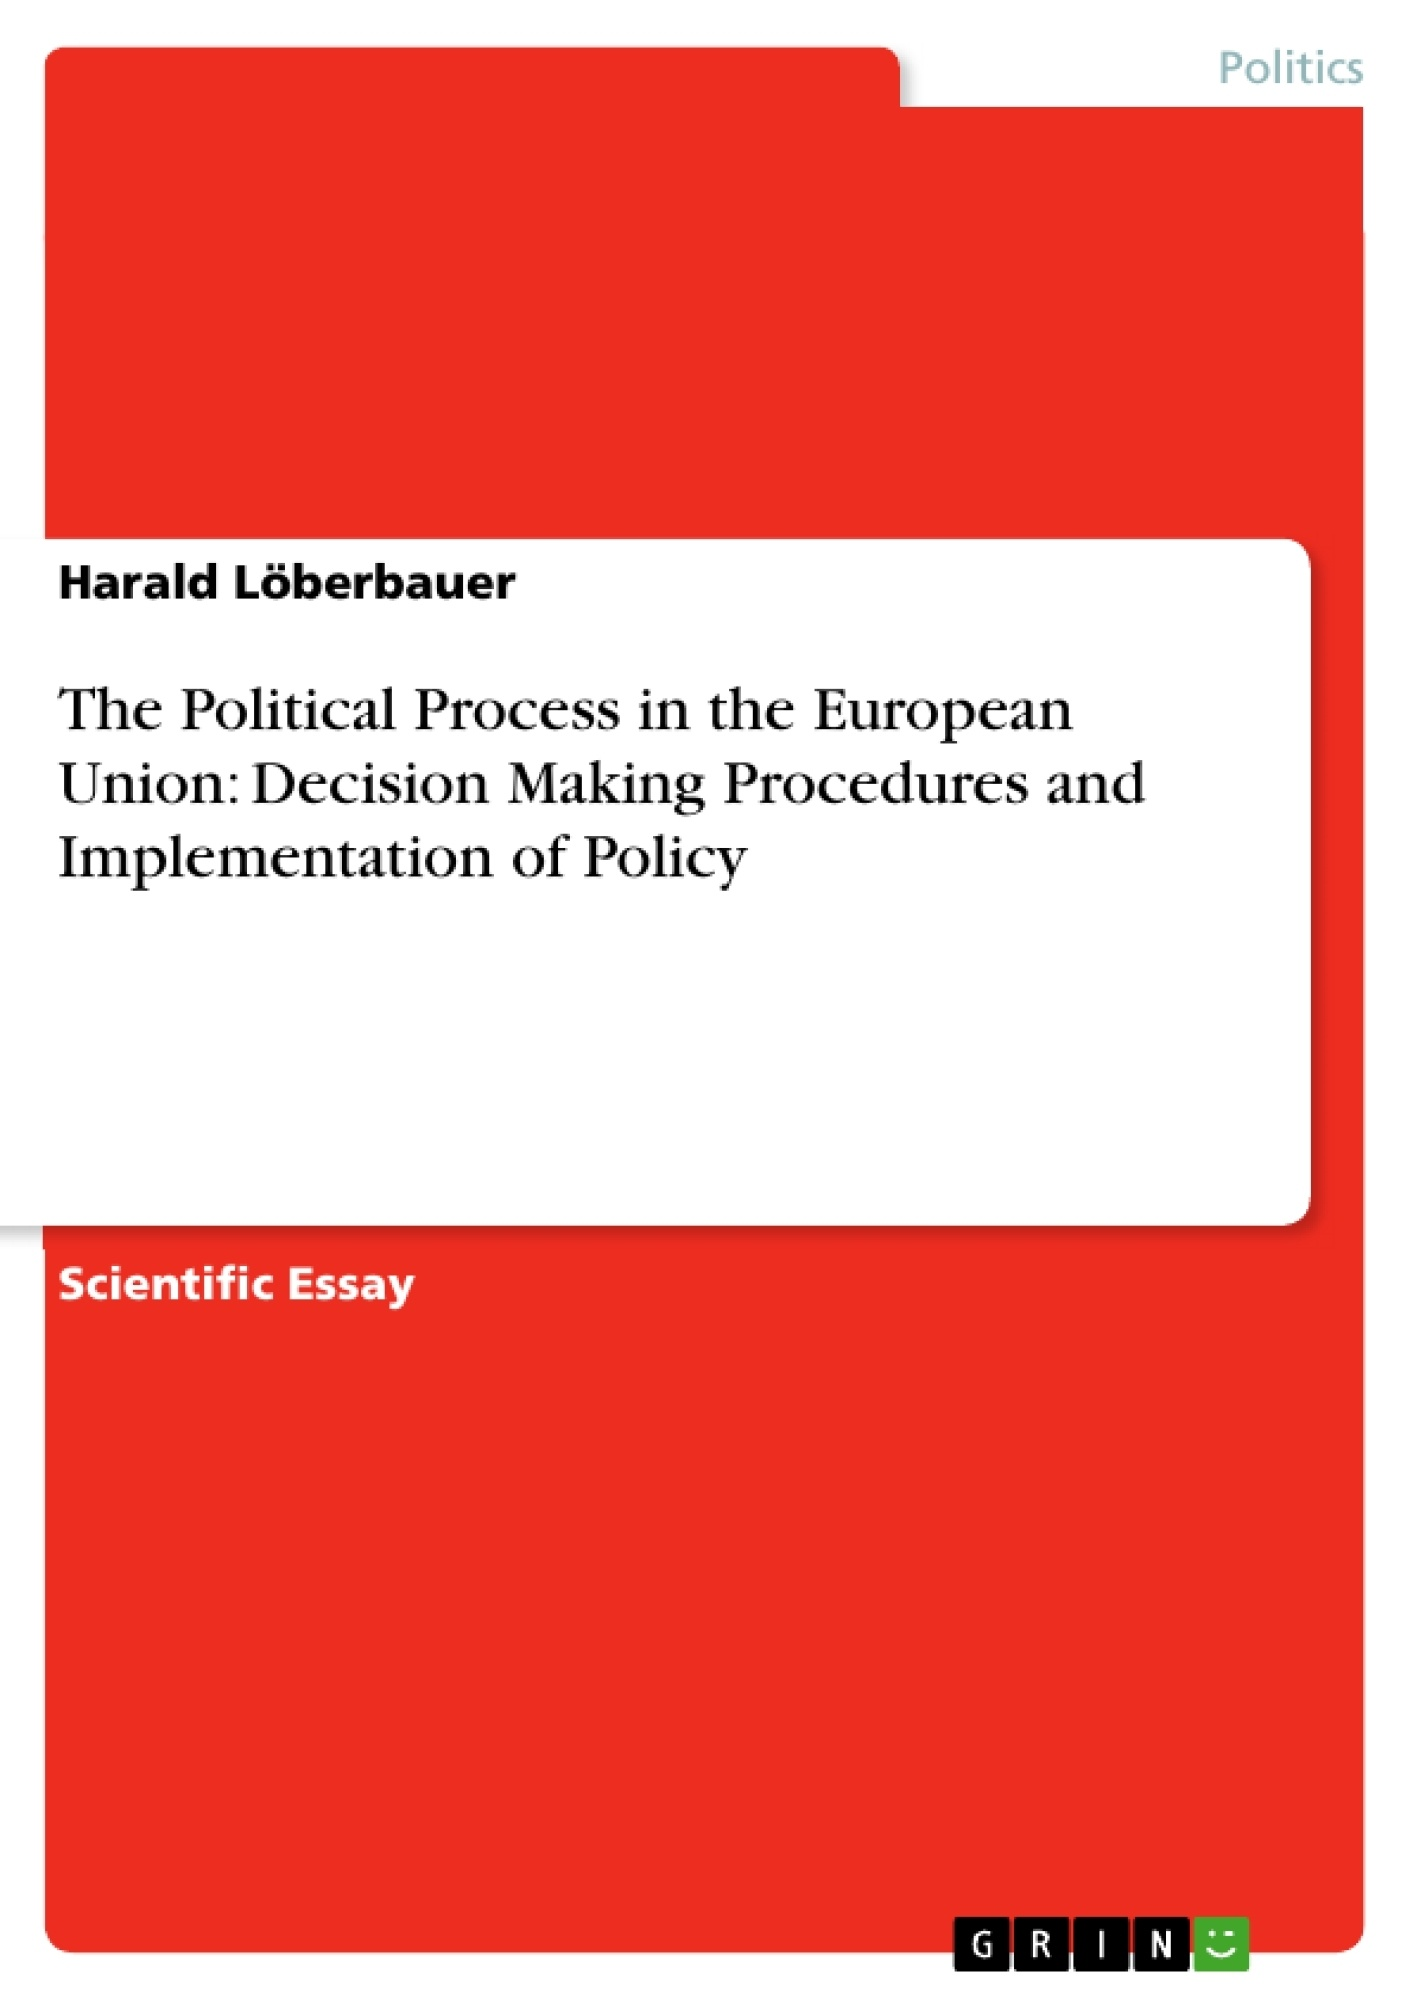 Title: The Political Process in the European Union: Decision Making Procedures and Implementation of Policy